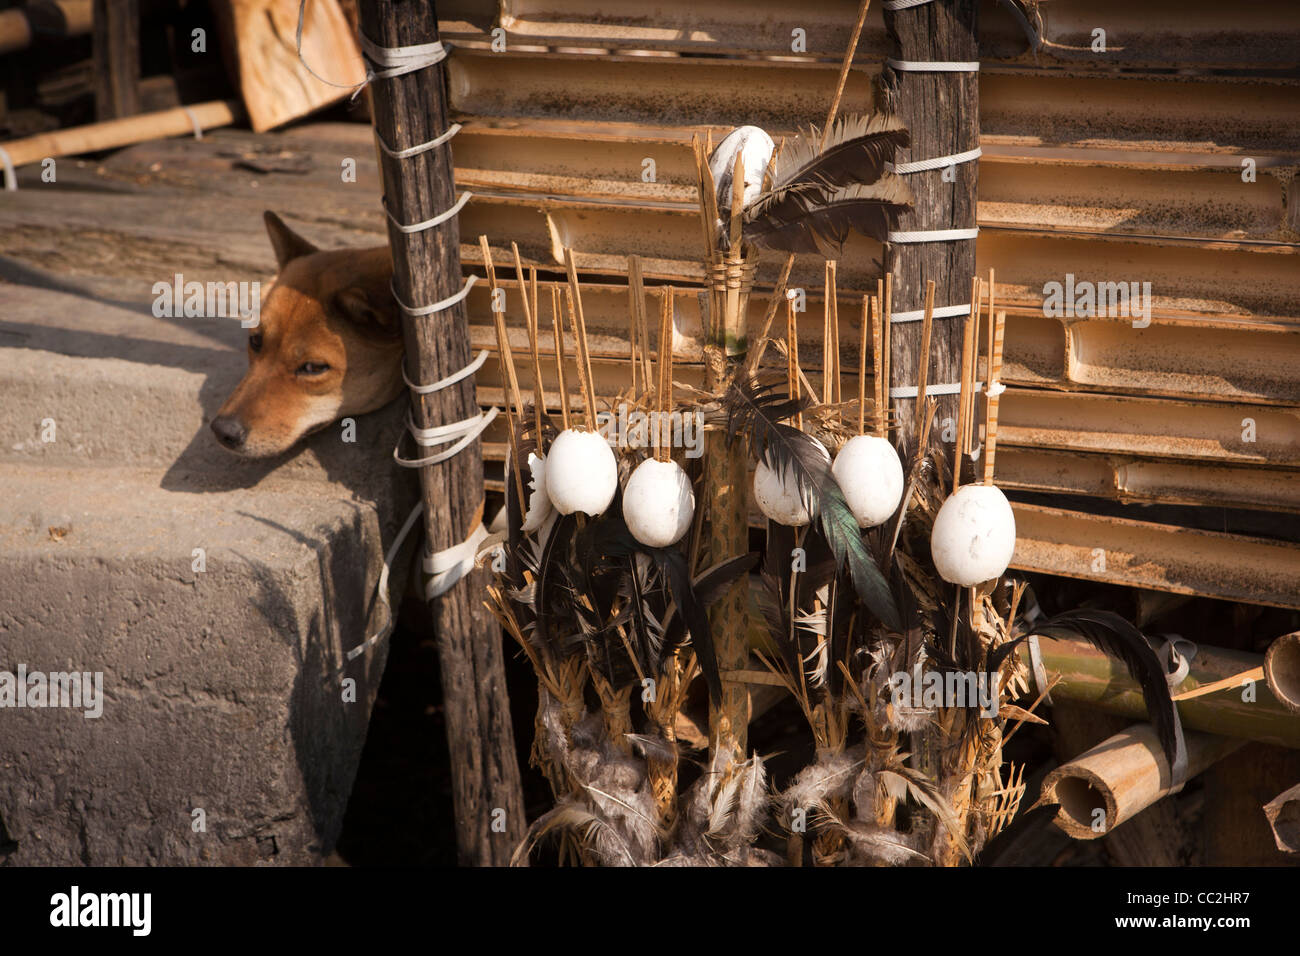 India, Arunachal Pradesh, Ziro, traditional apatani egg and feather tribal totem remembering dead relative - Stock Image